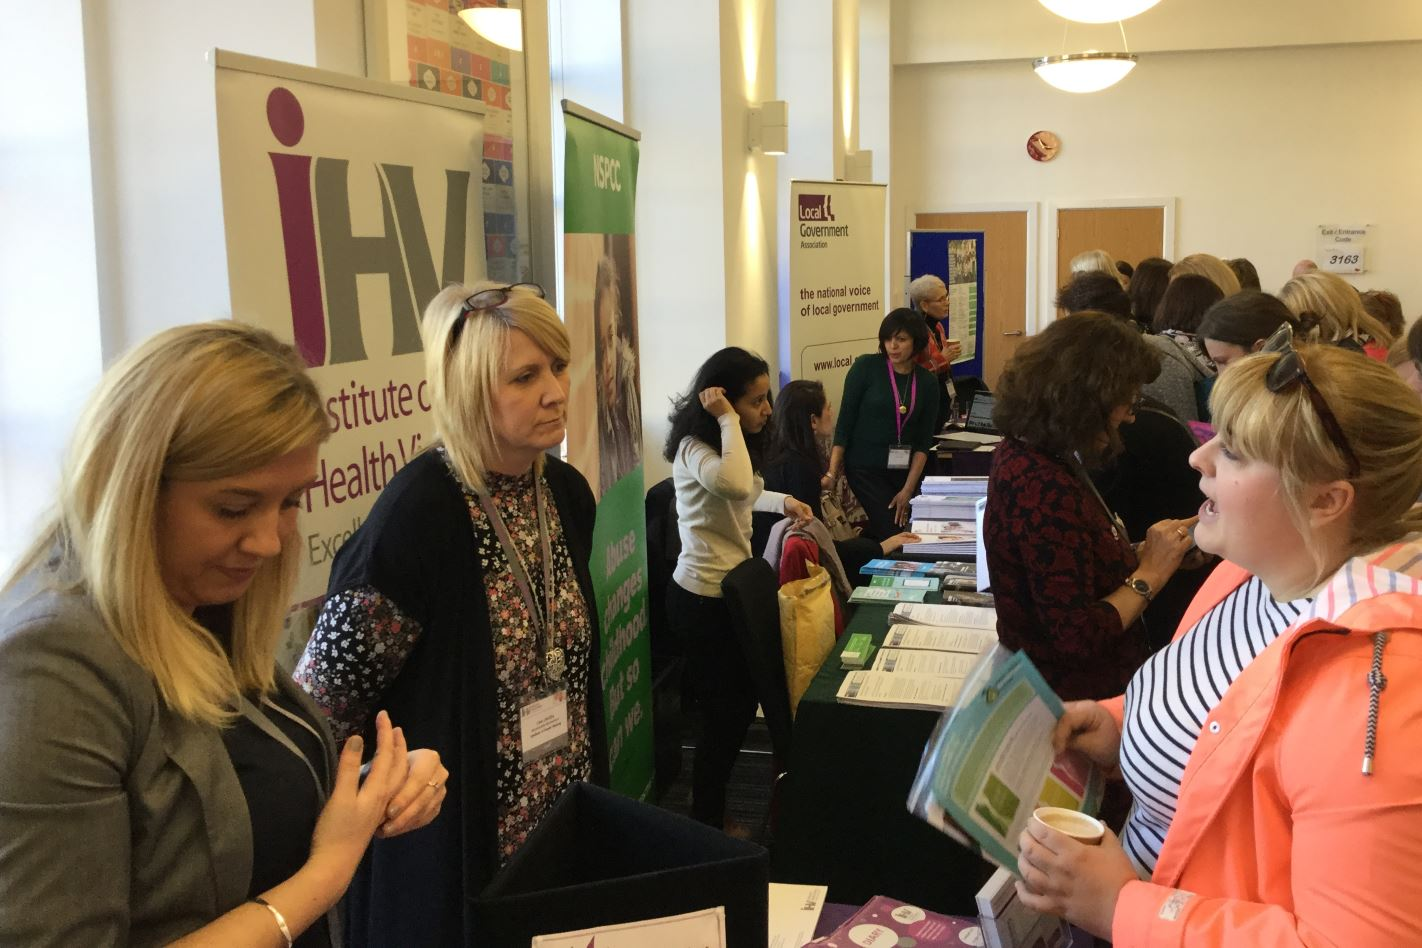 Marketplace at evidence-based practice in health visiting' conference